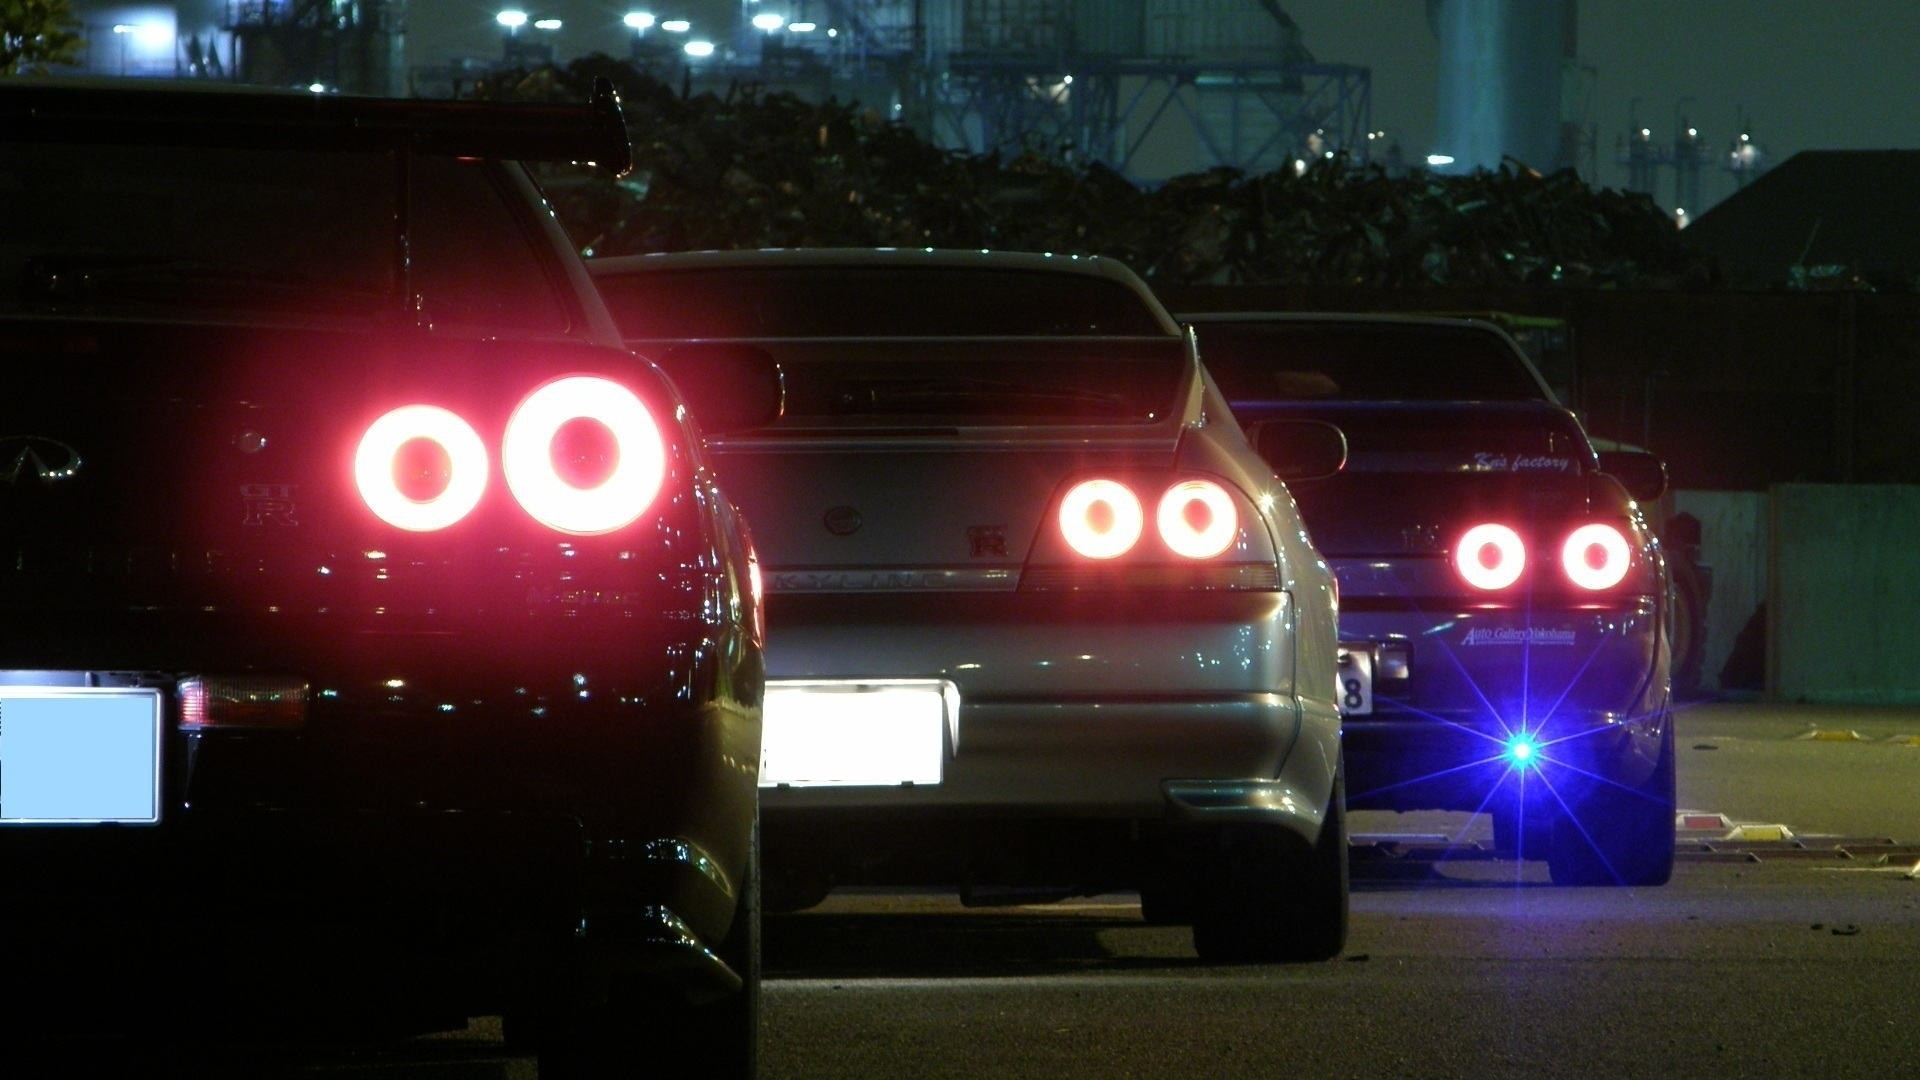 1920x1080 1920x1080 Cars Backview Vehicles Nissan Skyline R32 Gtr Jdm  Nissan Skyline R33 Gtr 1920x1080 Tuning Wallpaper